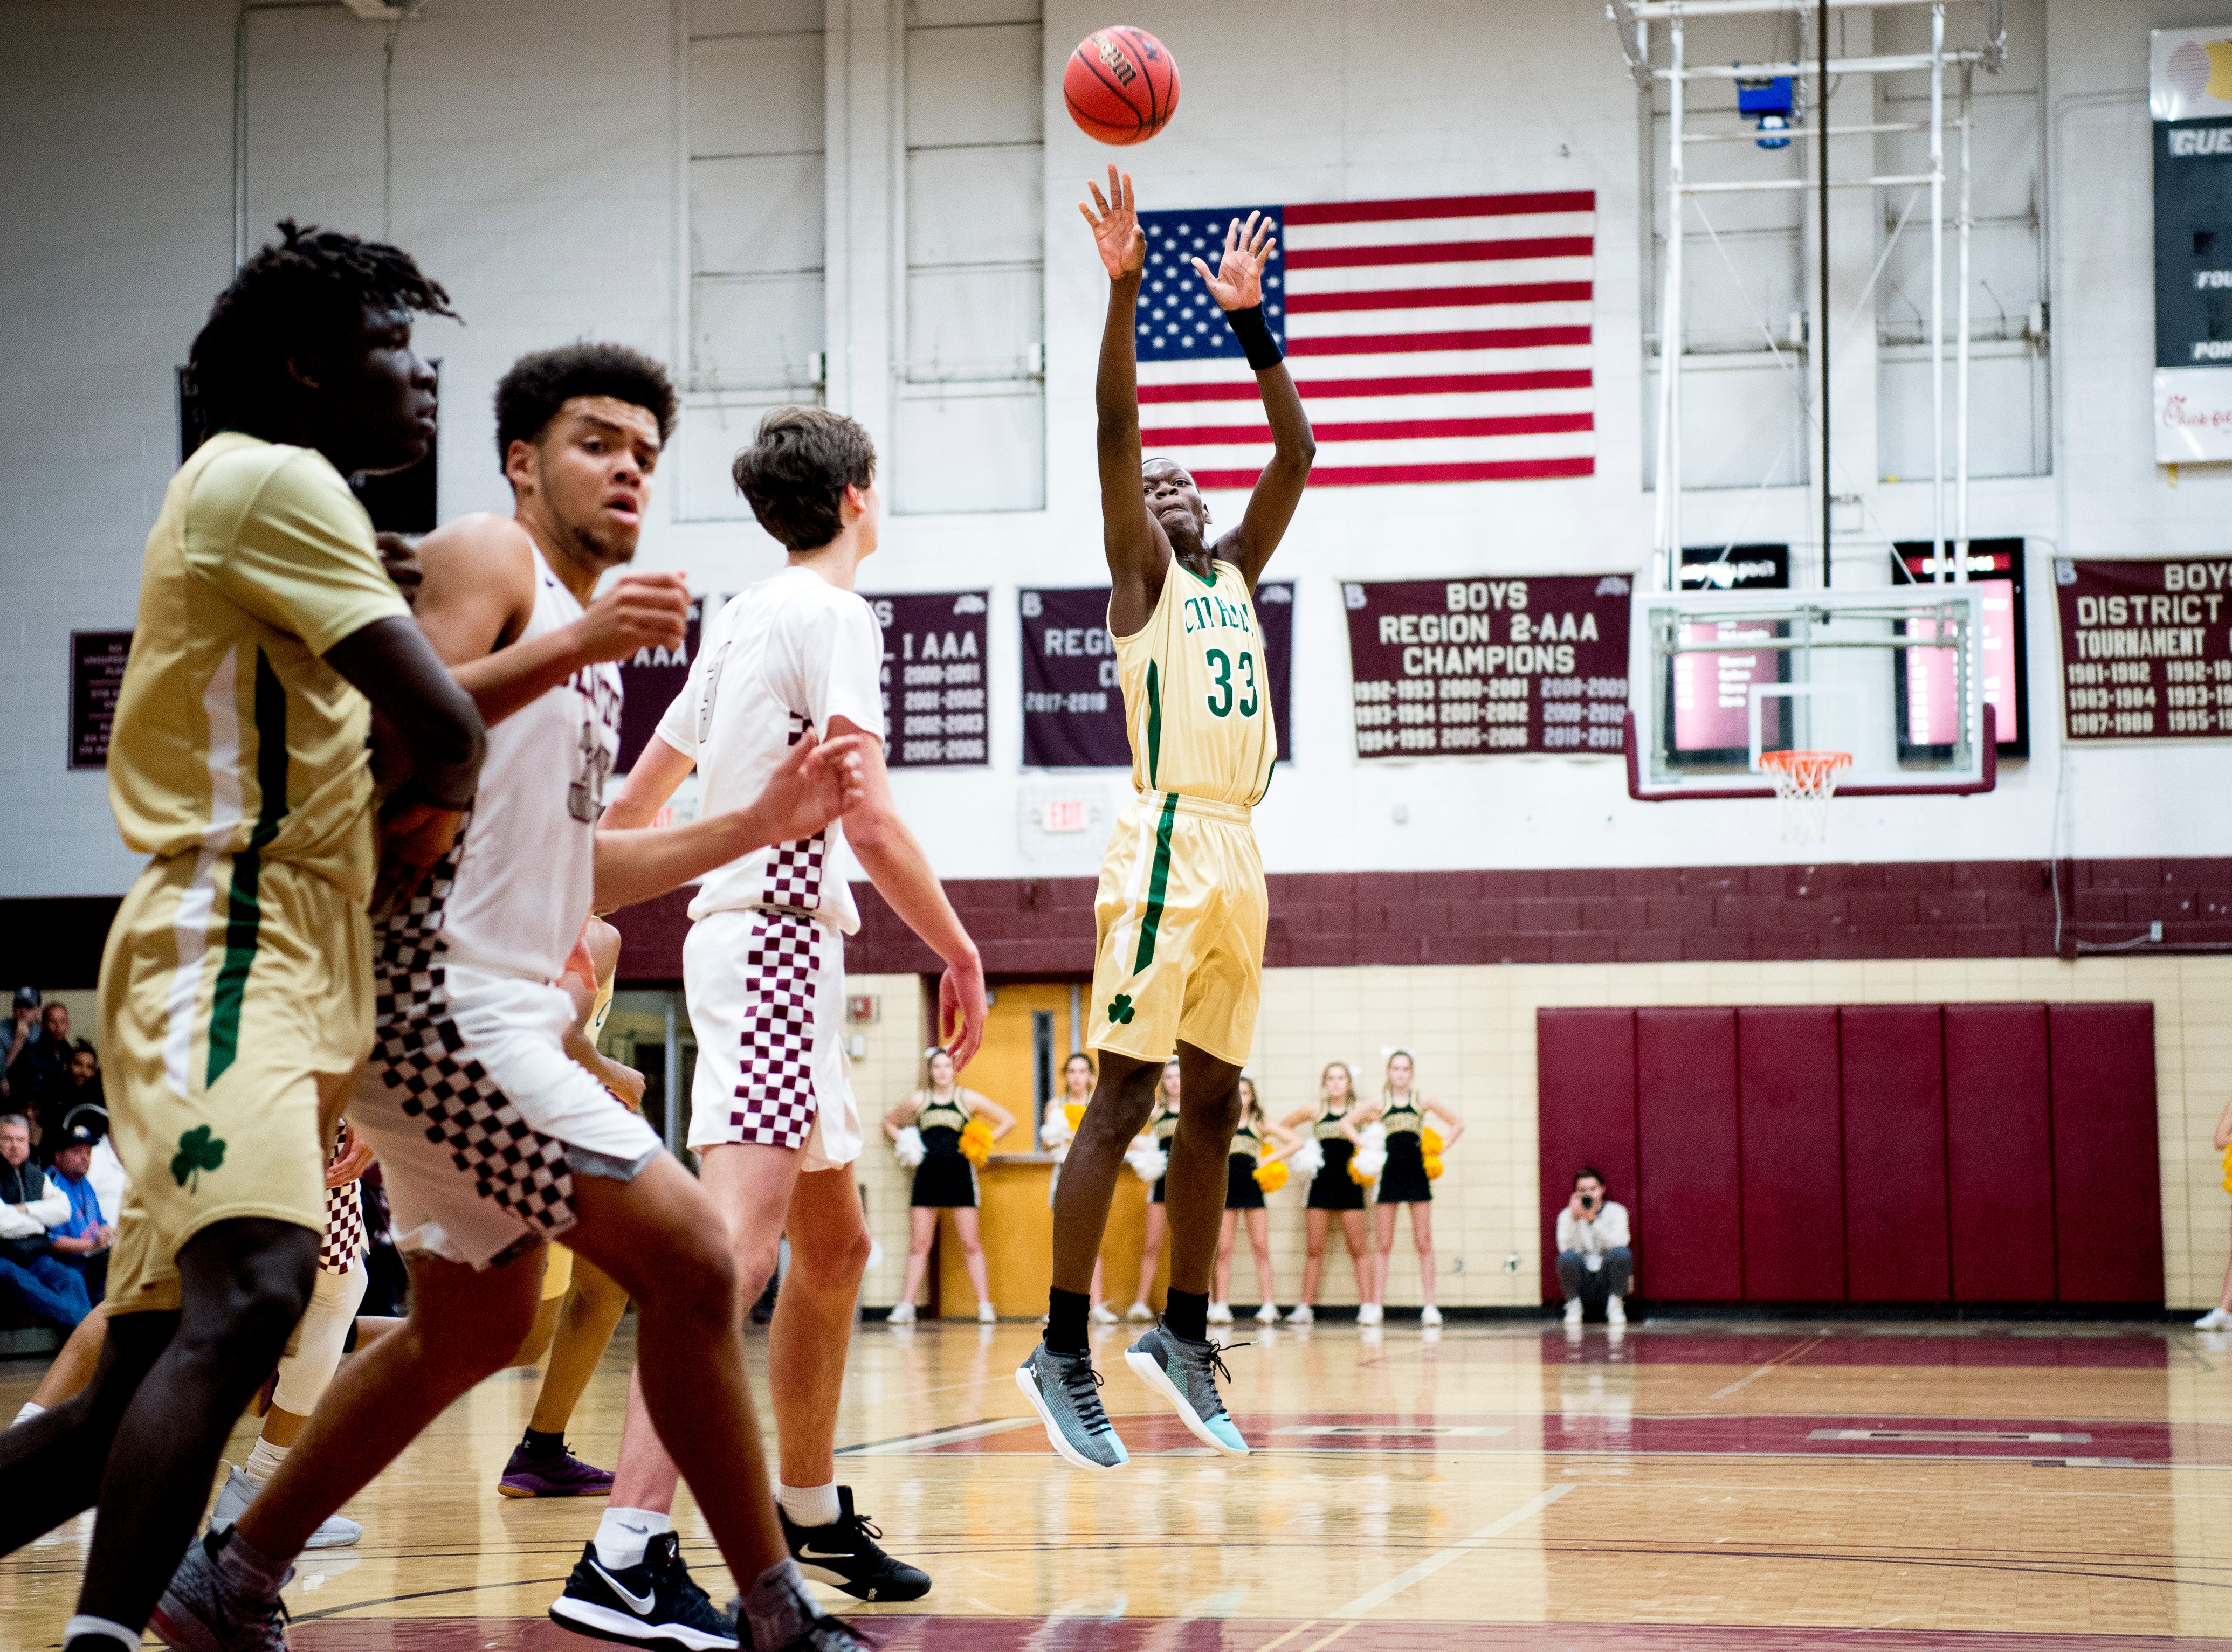 Catholic's Handje Tamba (33) shoots the ball during a game between Bearden and Catholic at Bearden High School in Knoxville, Tennessee on Thursday, January 10, 2019.